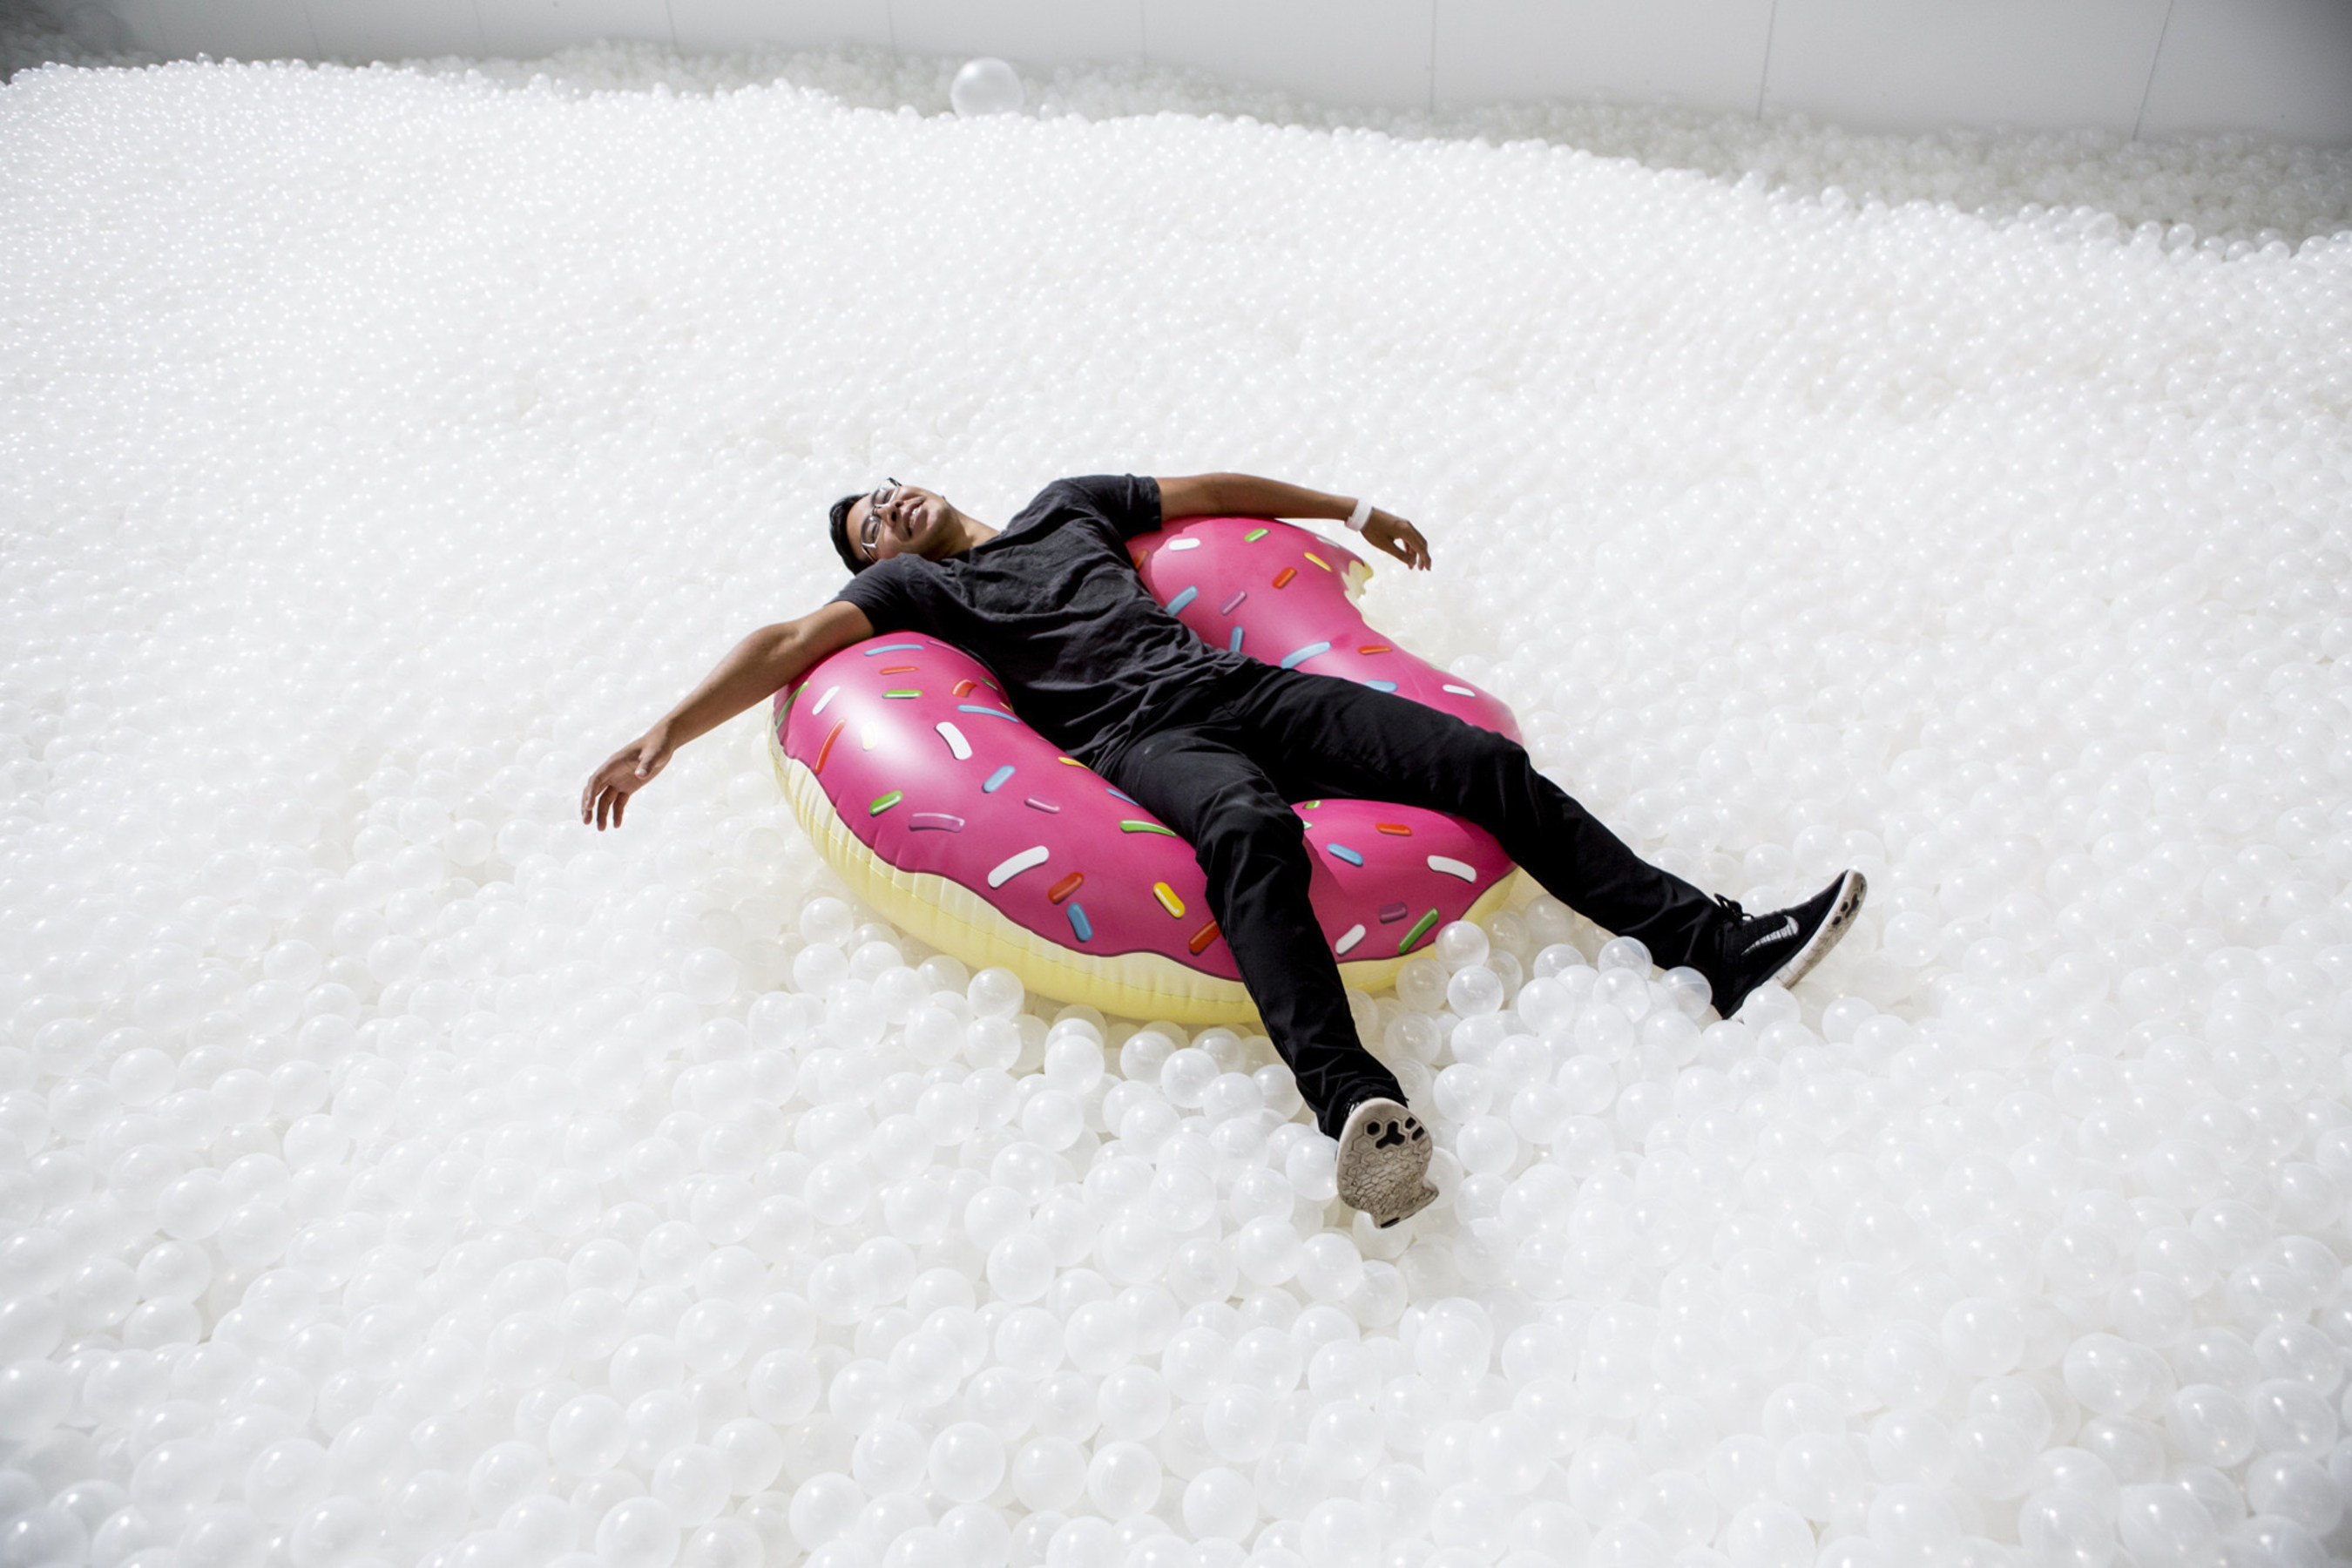 This summer, for a cool change, hit The Beach - a joyous monochromatic installation of 1.1 million recyclable polyethylene balls at The Cutaway, Barangaroo Reserve. A quintessential Australian experience is reimagined by New York-based art and architecture collaborative practice, Snarkitecture.